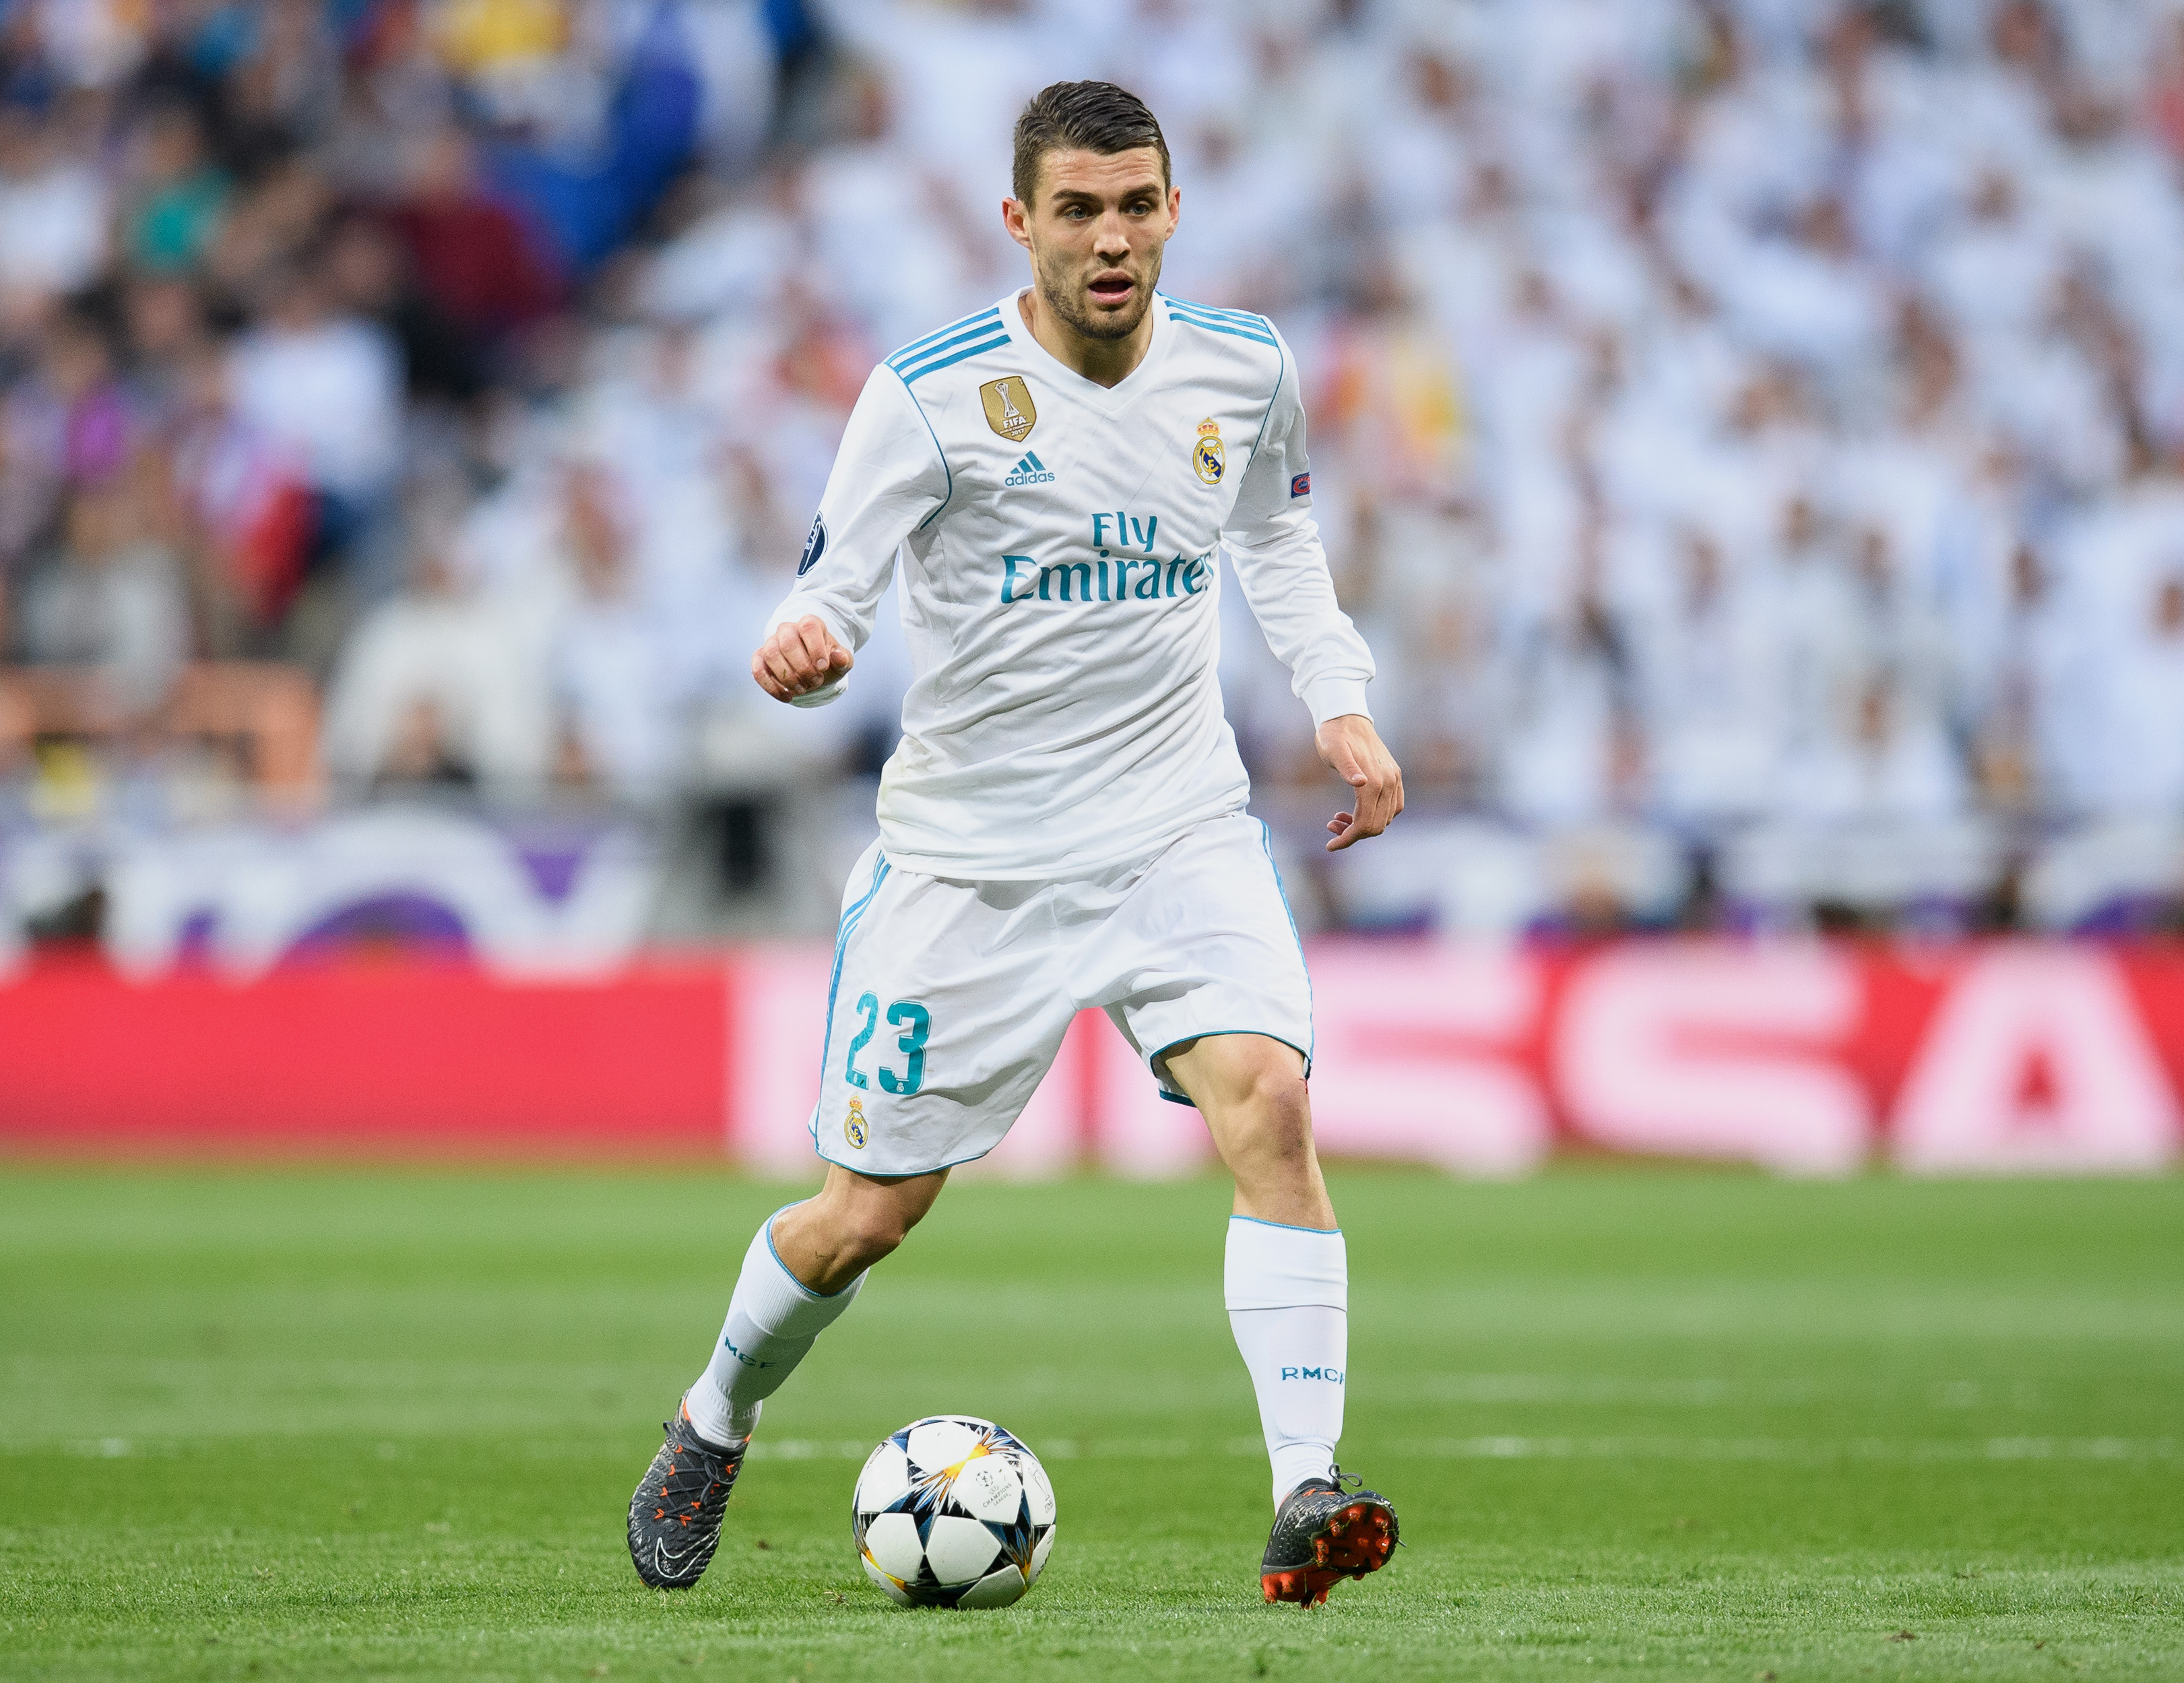 MADRID, SPAIN - MAY 01: Mateo Kovacic of Real Madrid controls the ball during the UEFA Champions League Semi Final Second Leg match between Real Madrid and Bayern Muenchen at the Bernabeu on May 1, 2018 in Madrid, Spain. (Photo by Matthias Hangst/Bongarts/Getty Images)